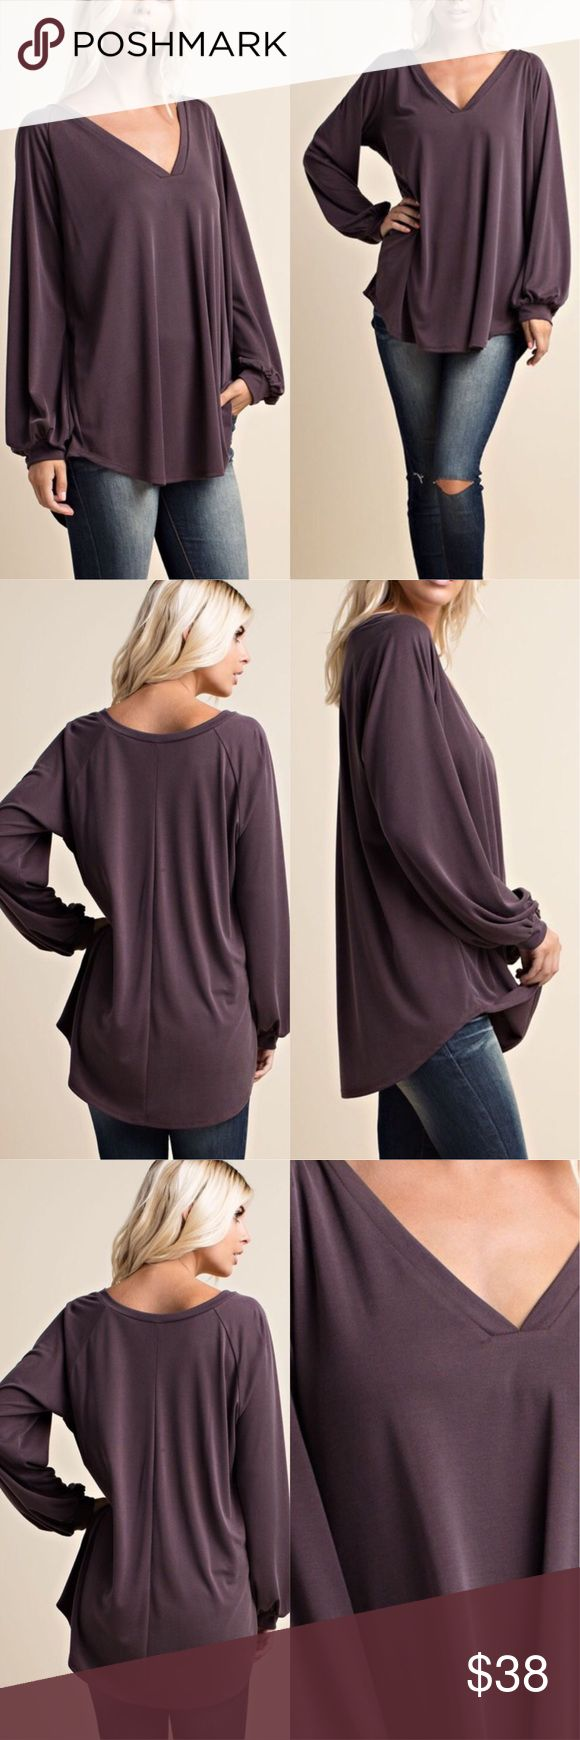 Last one ✔️ Soft and Loose fit long sleeve tops This top has a loose tunic fit and is very comfortable...perfect for the change of season. 65%rayon 35%spandex. Price is firm. Small Bust 46' Medium Bust 48' Large Bust 50' Boutique Tops